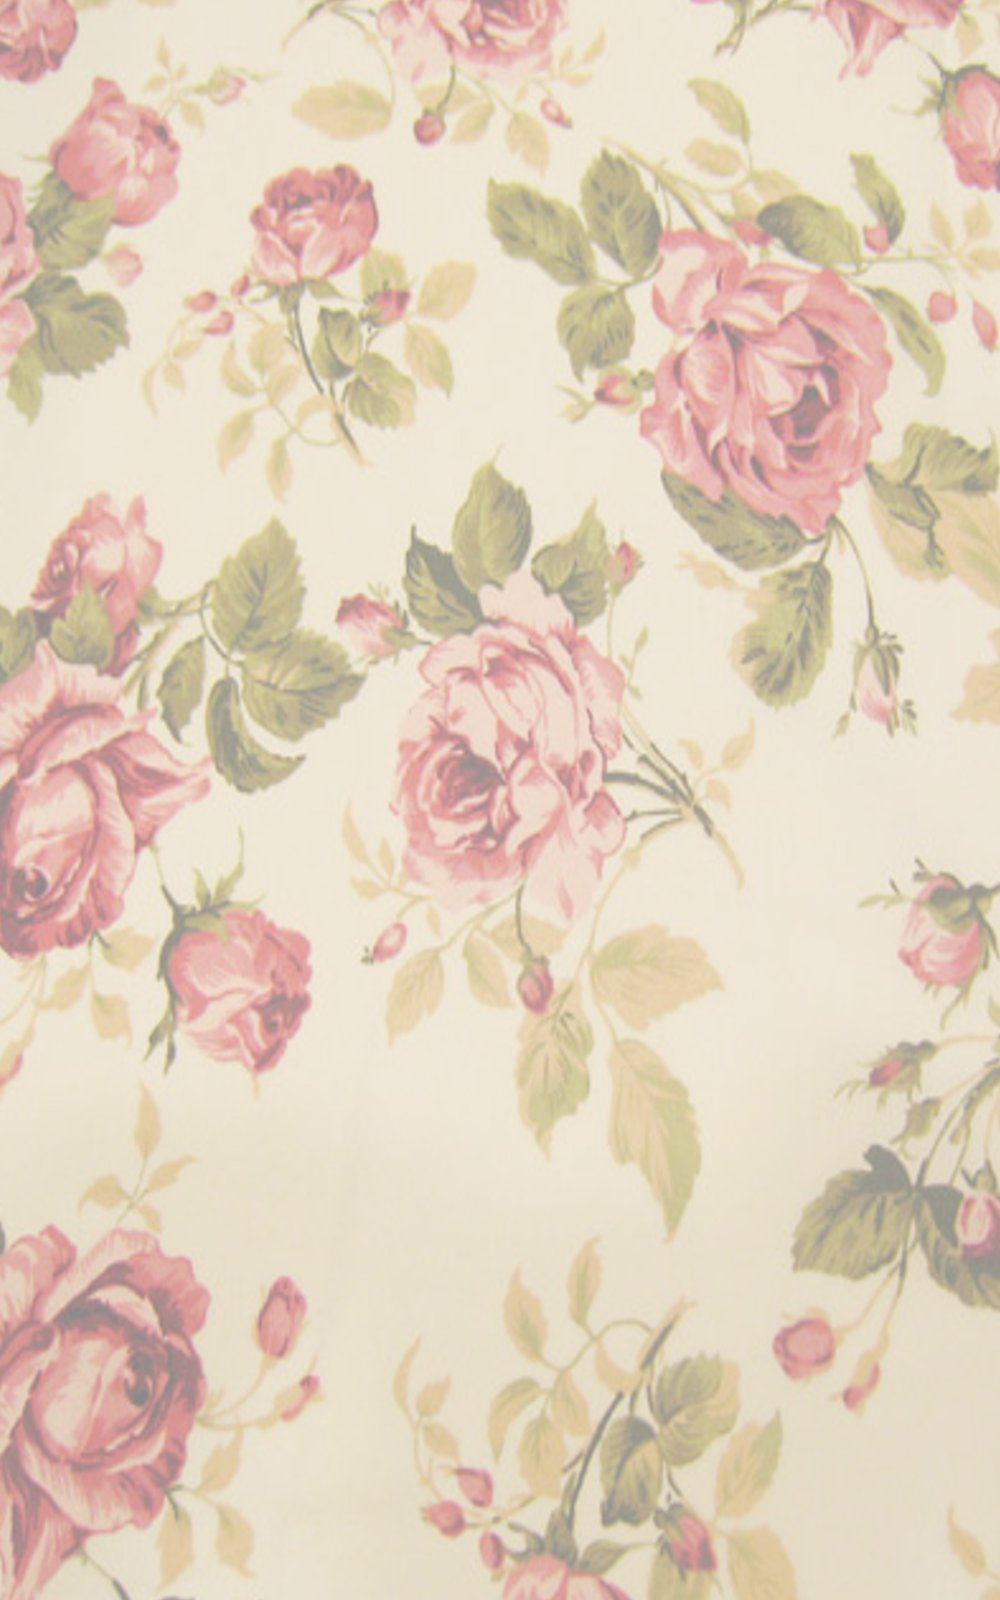 Keywords Vintage Floral Print Wallpaper Tumblr and Tags